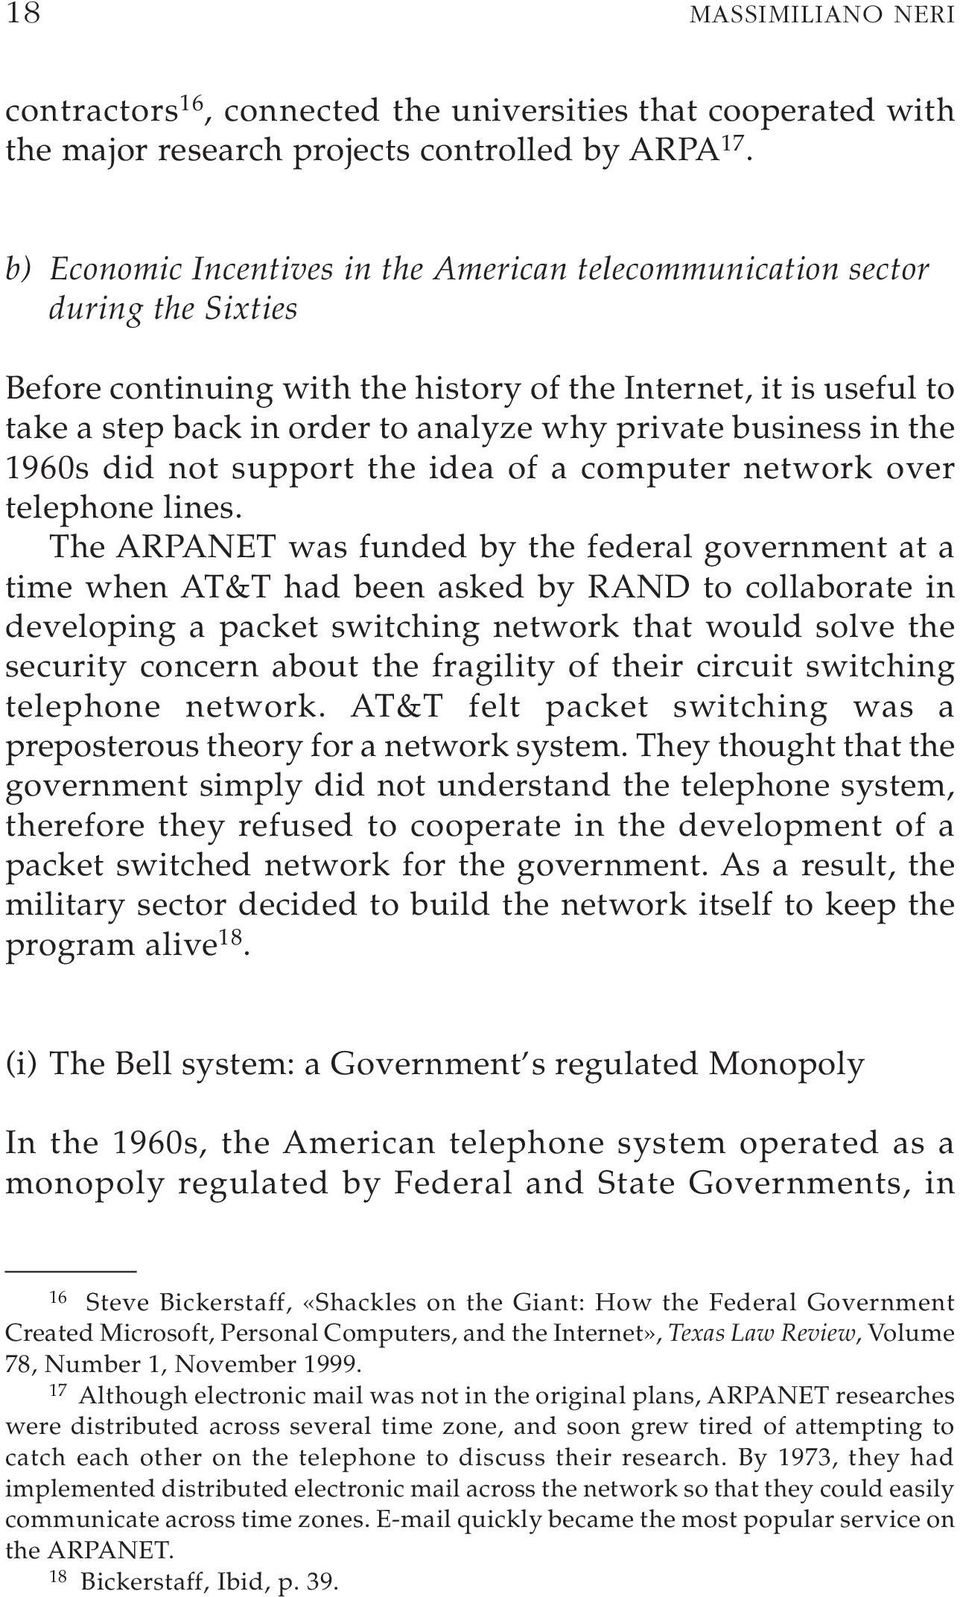 business in the 1960s did not support the idea of a computer network over telephone lines.